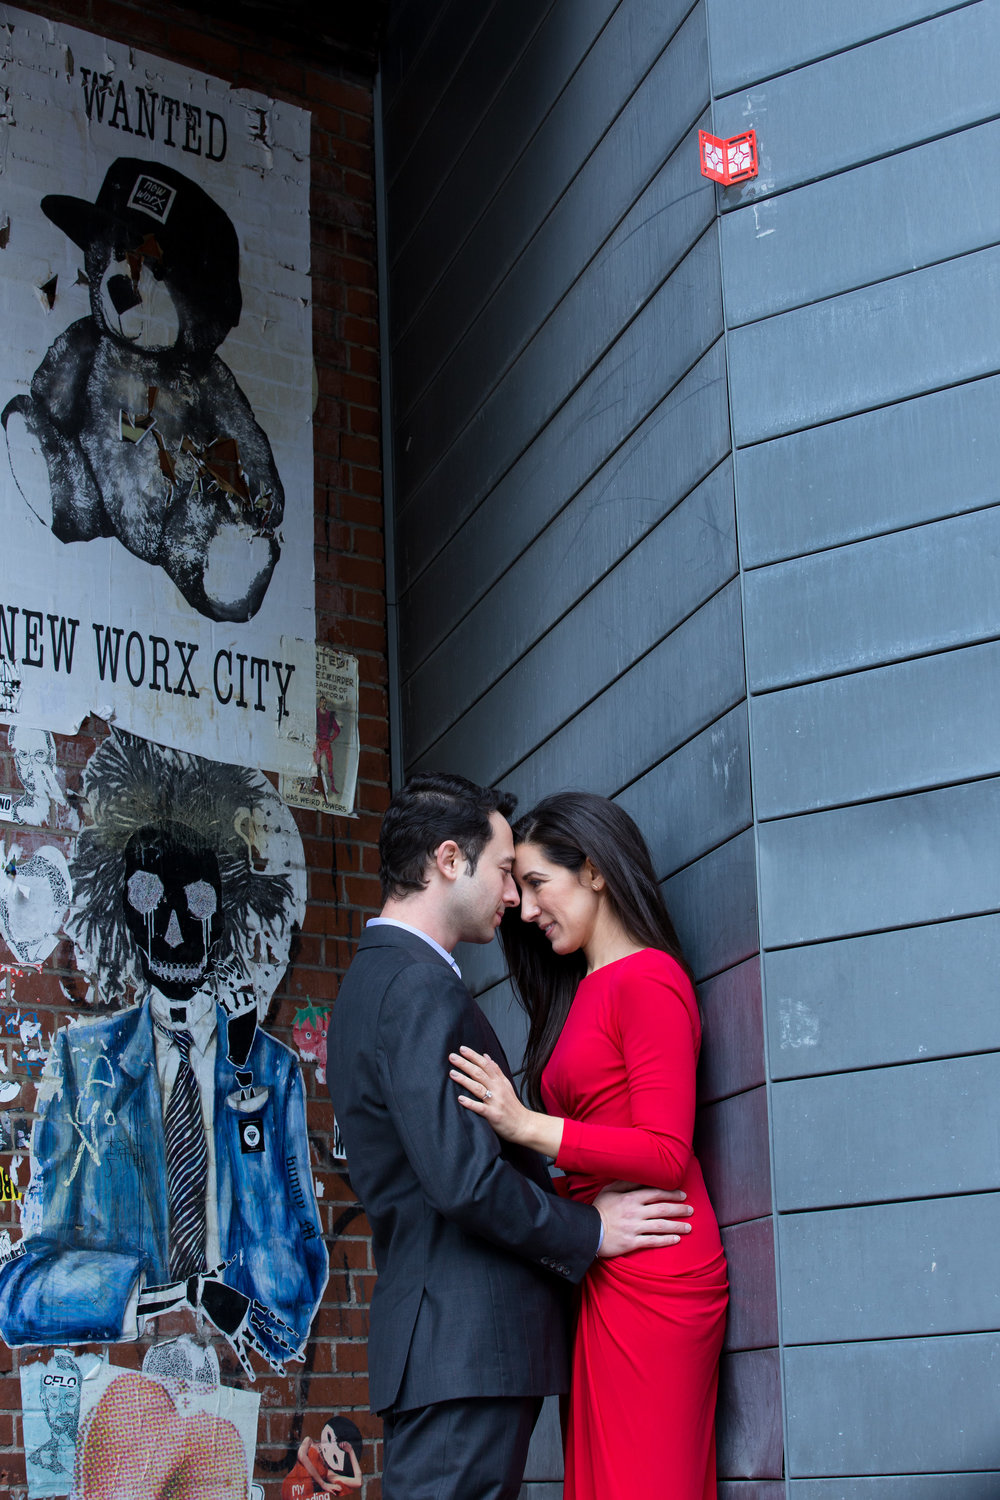 engagement-shoot-meat-packing-district-nyc-193.jpg